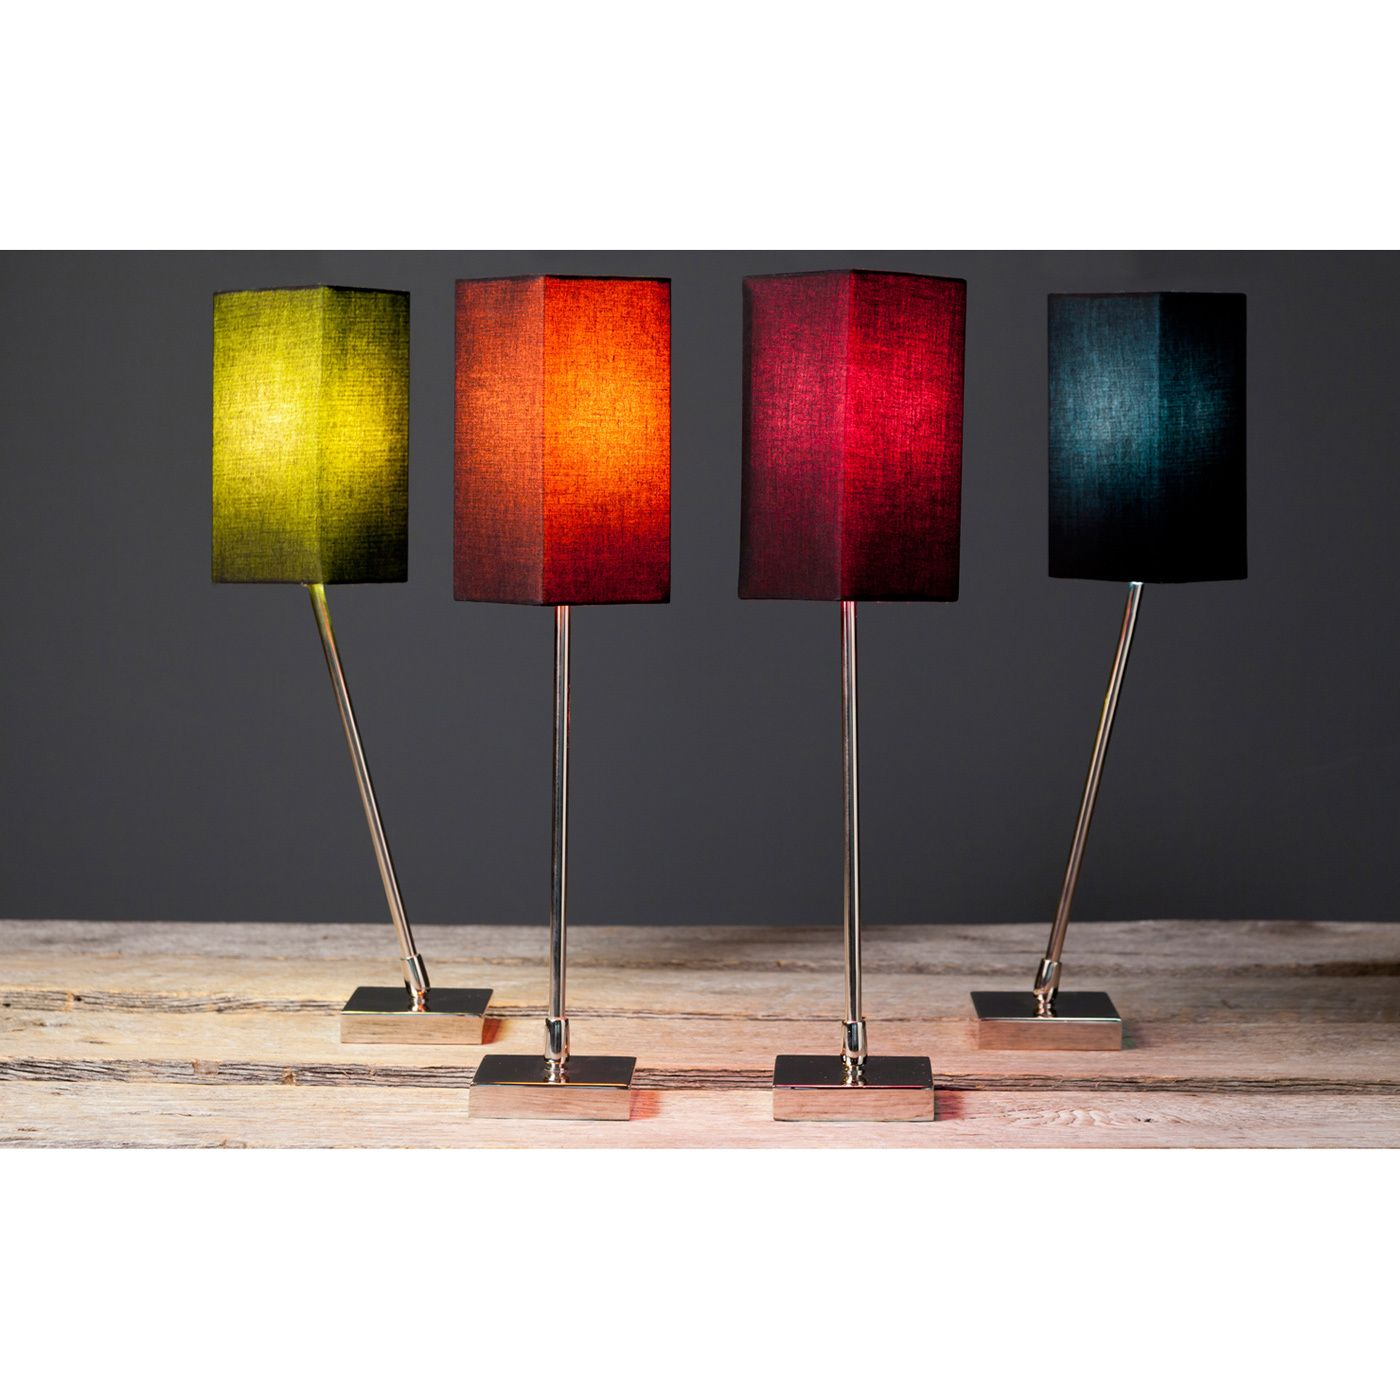 Casa cortes lush mosaic art glass 25 inch table lamps set of 2 - Filament 1 Light Stainless Steel Hand Assembled Table Lamps Set Of 2 By Filament